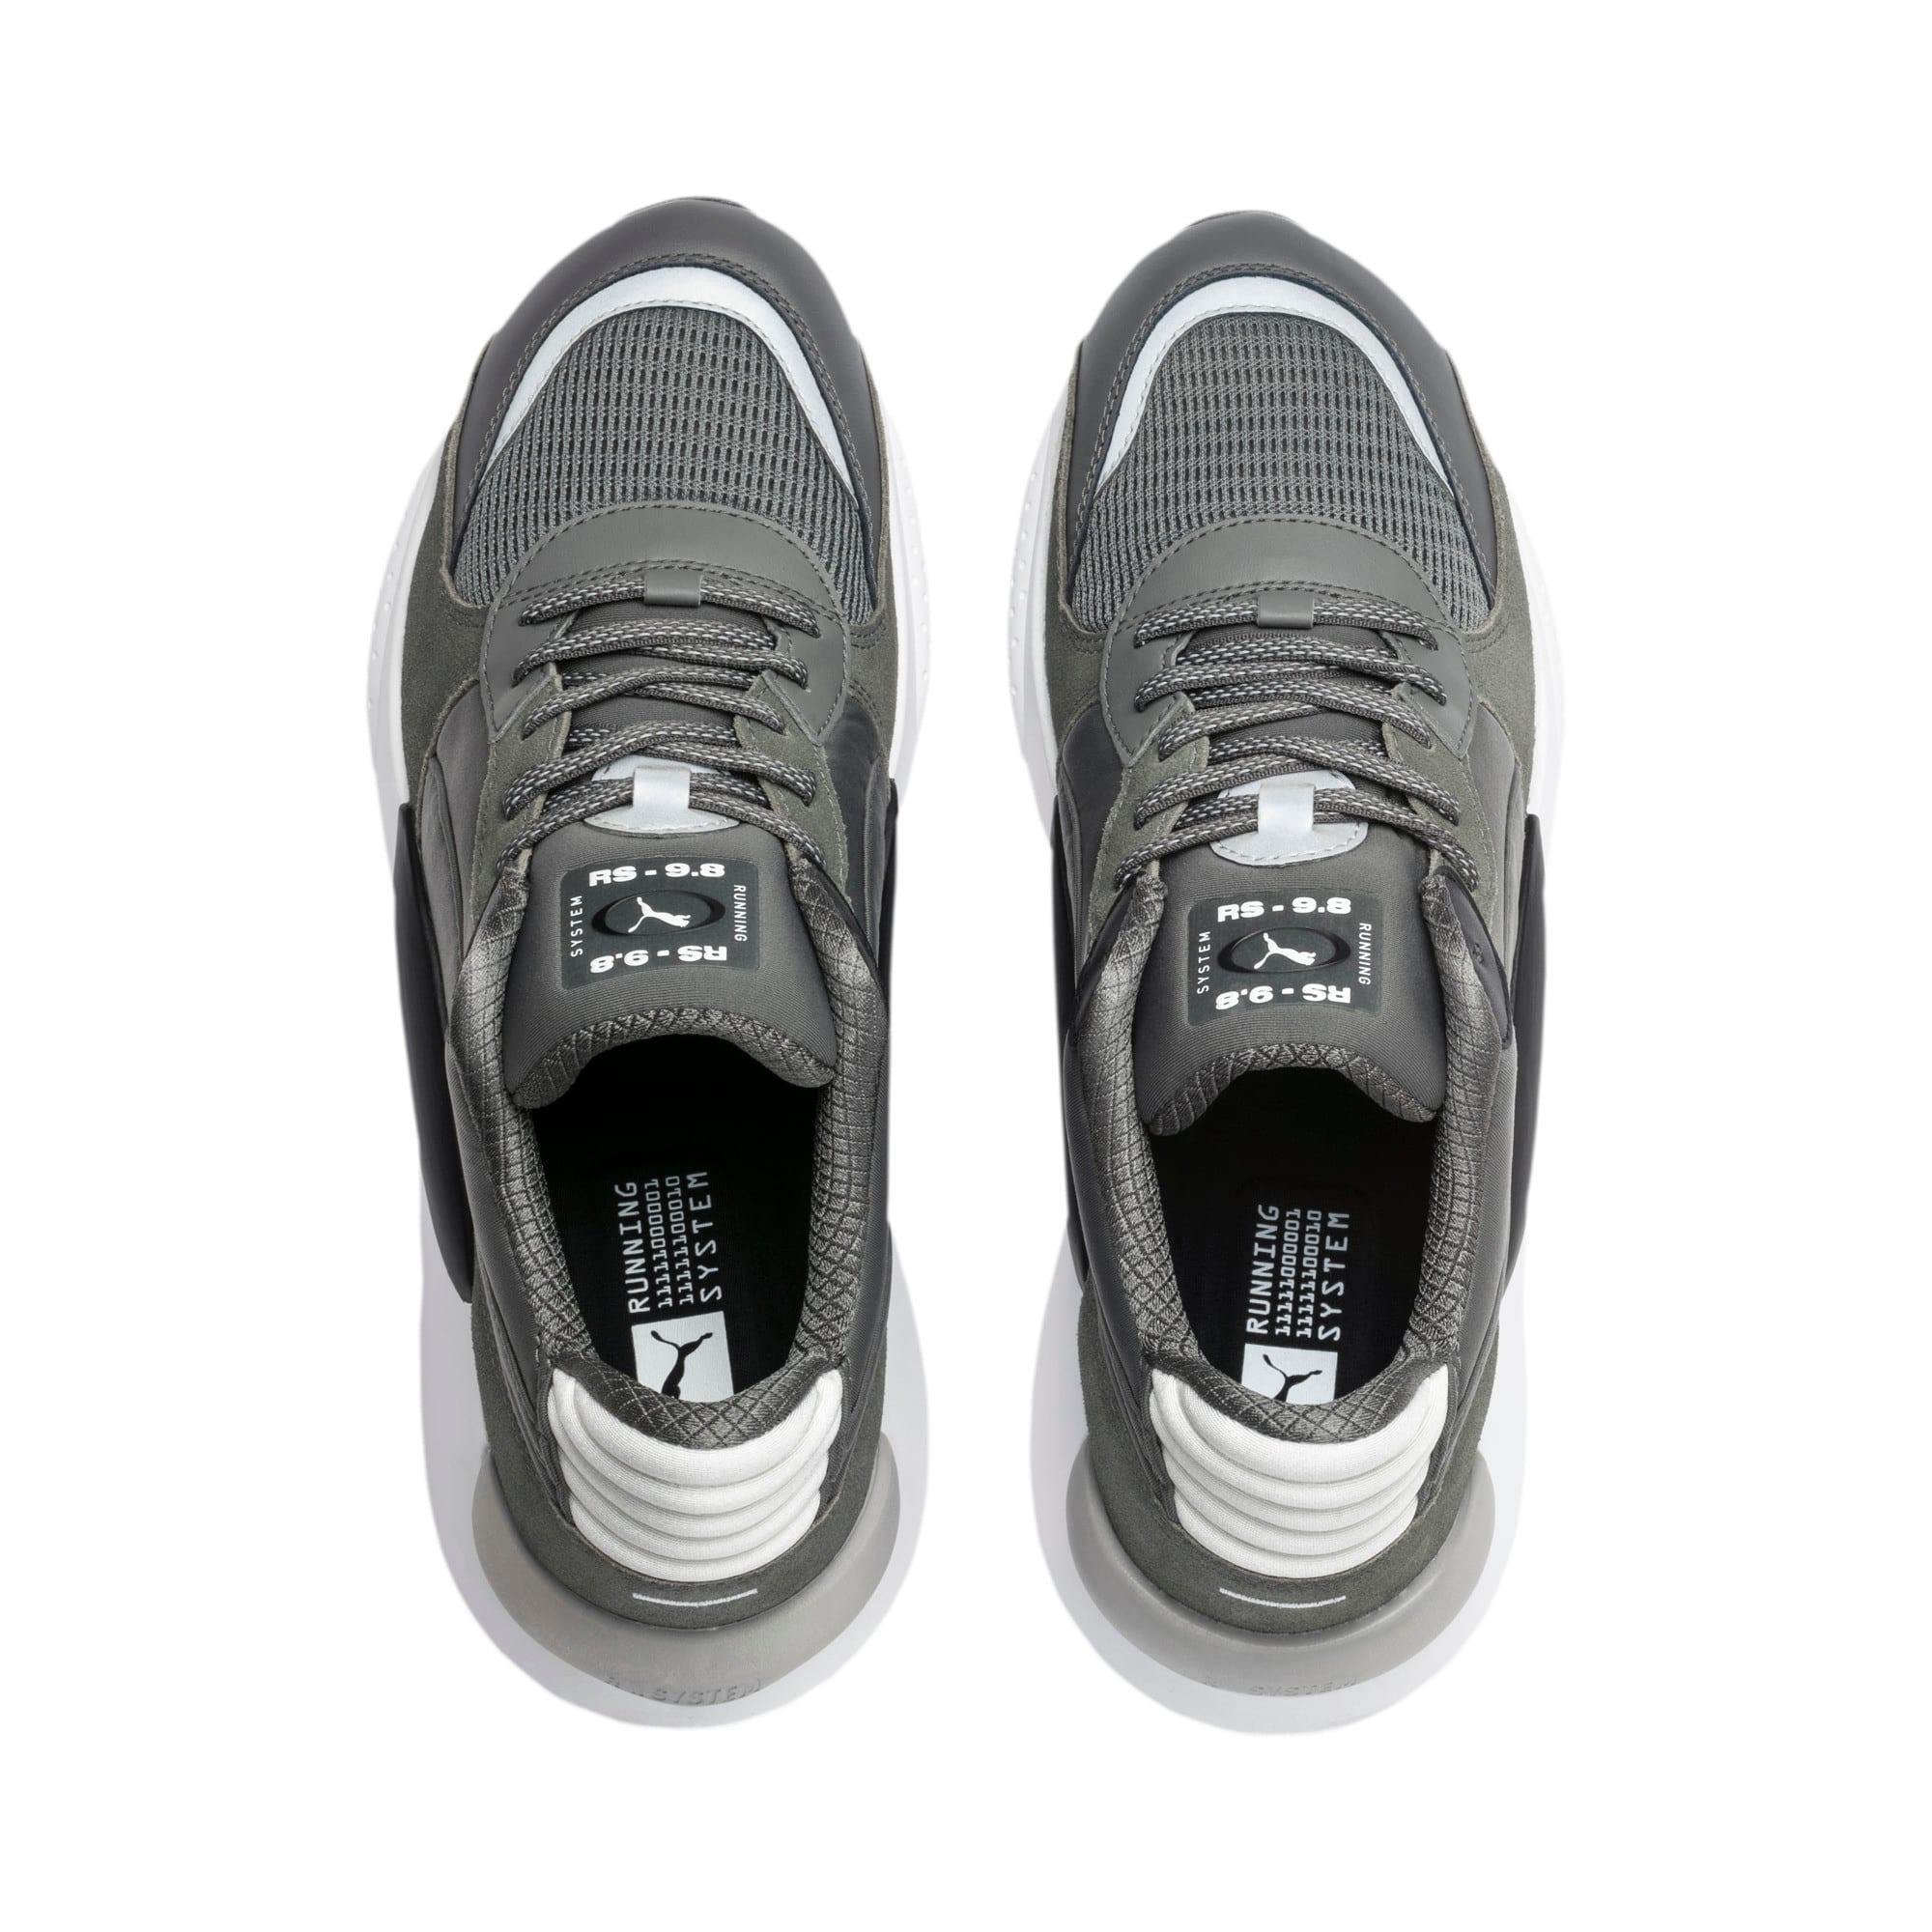 Thumbnail 6 of RS 9.8 Gravity Trainers, CASTLEROCK-Puma Black, medium